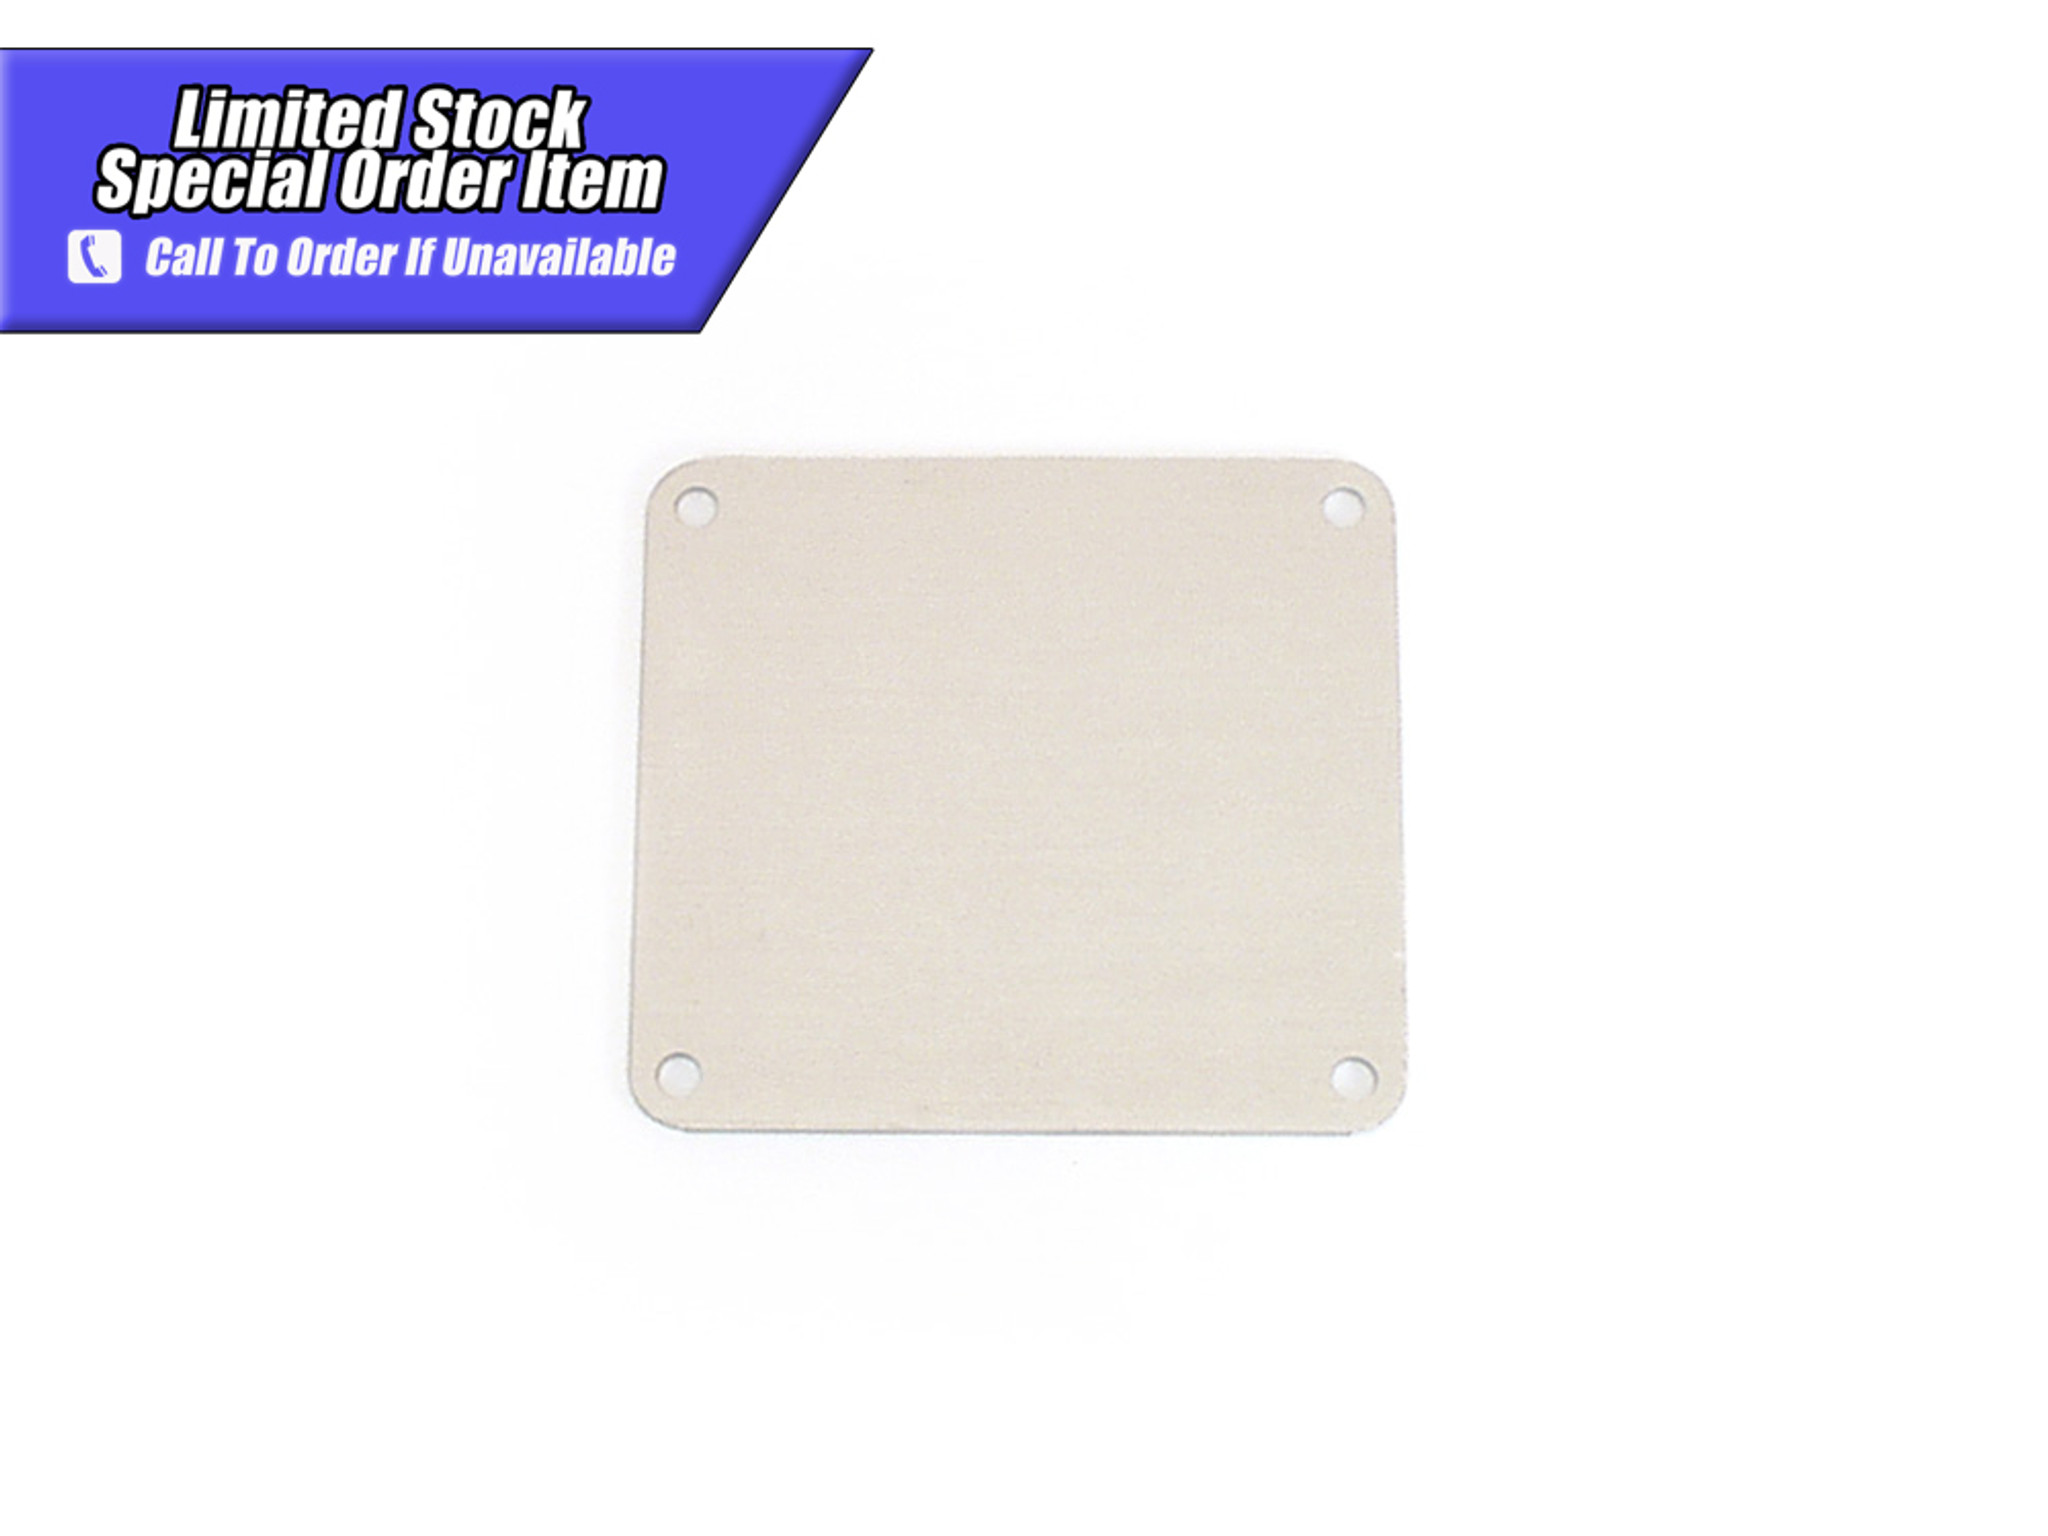 84-150 Aluminum Intake Manifold Block Off Plate For Holley 4150